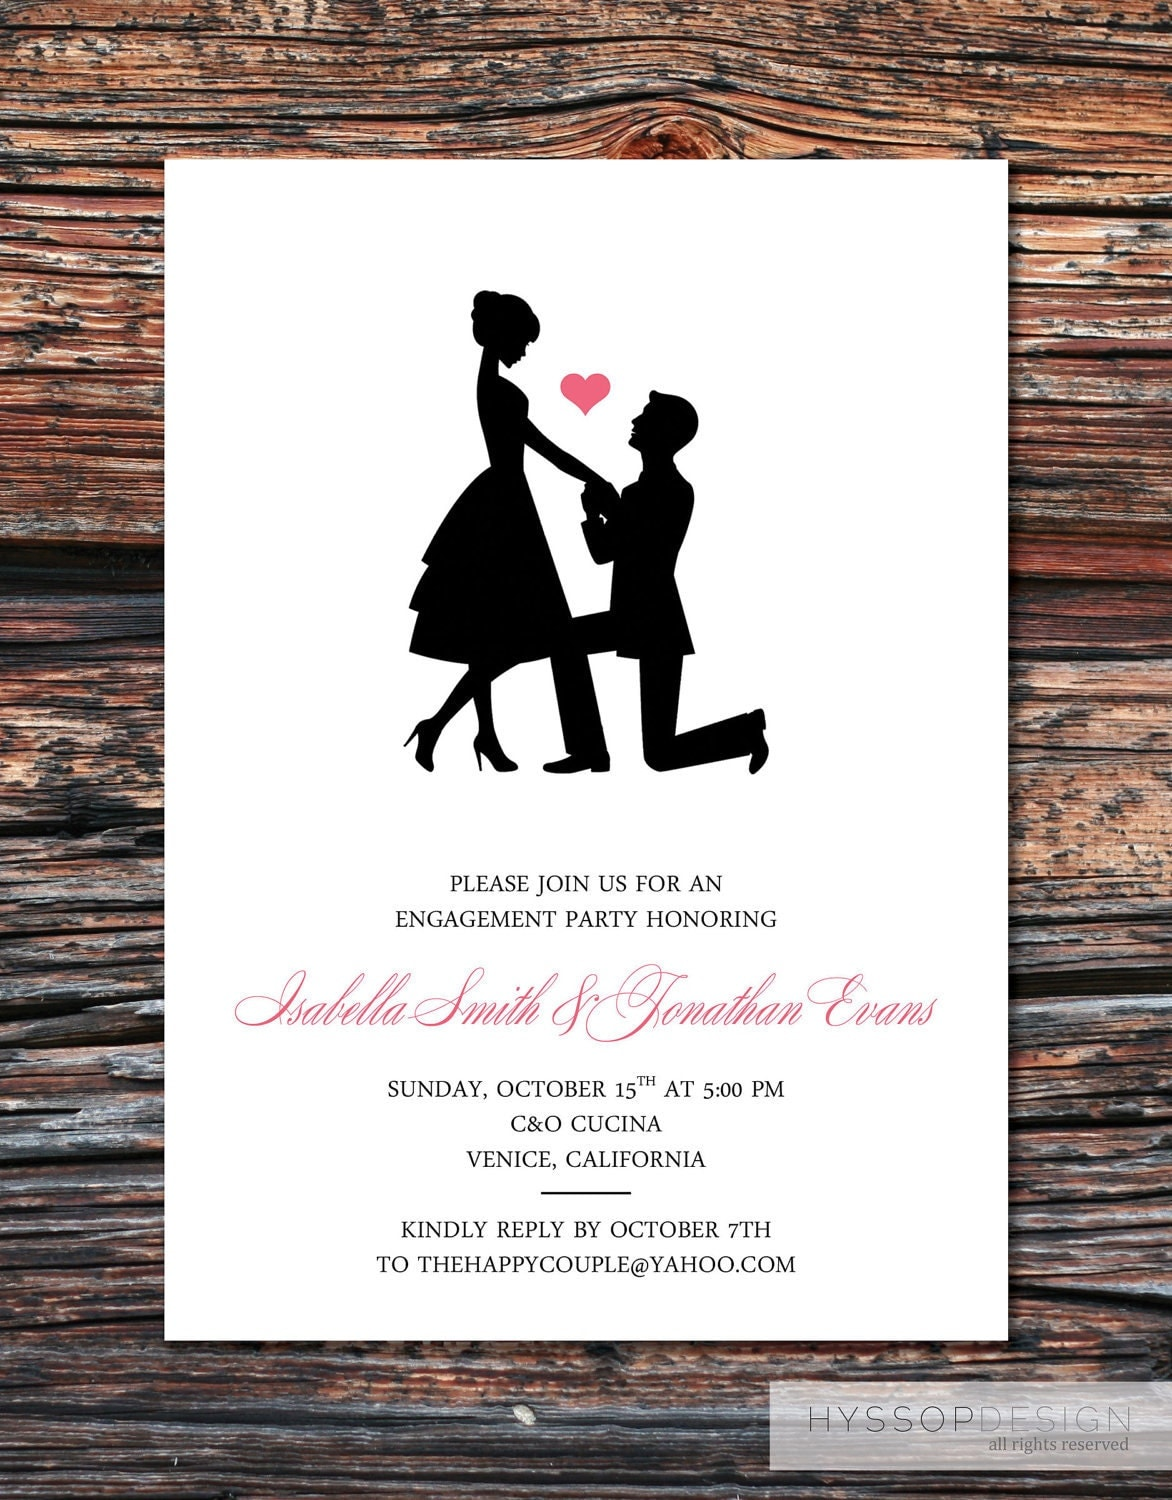 Printable diy sweet silhouette proposal by hyssopdesign on for Invitation for engagement party